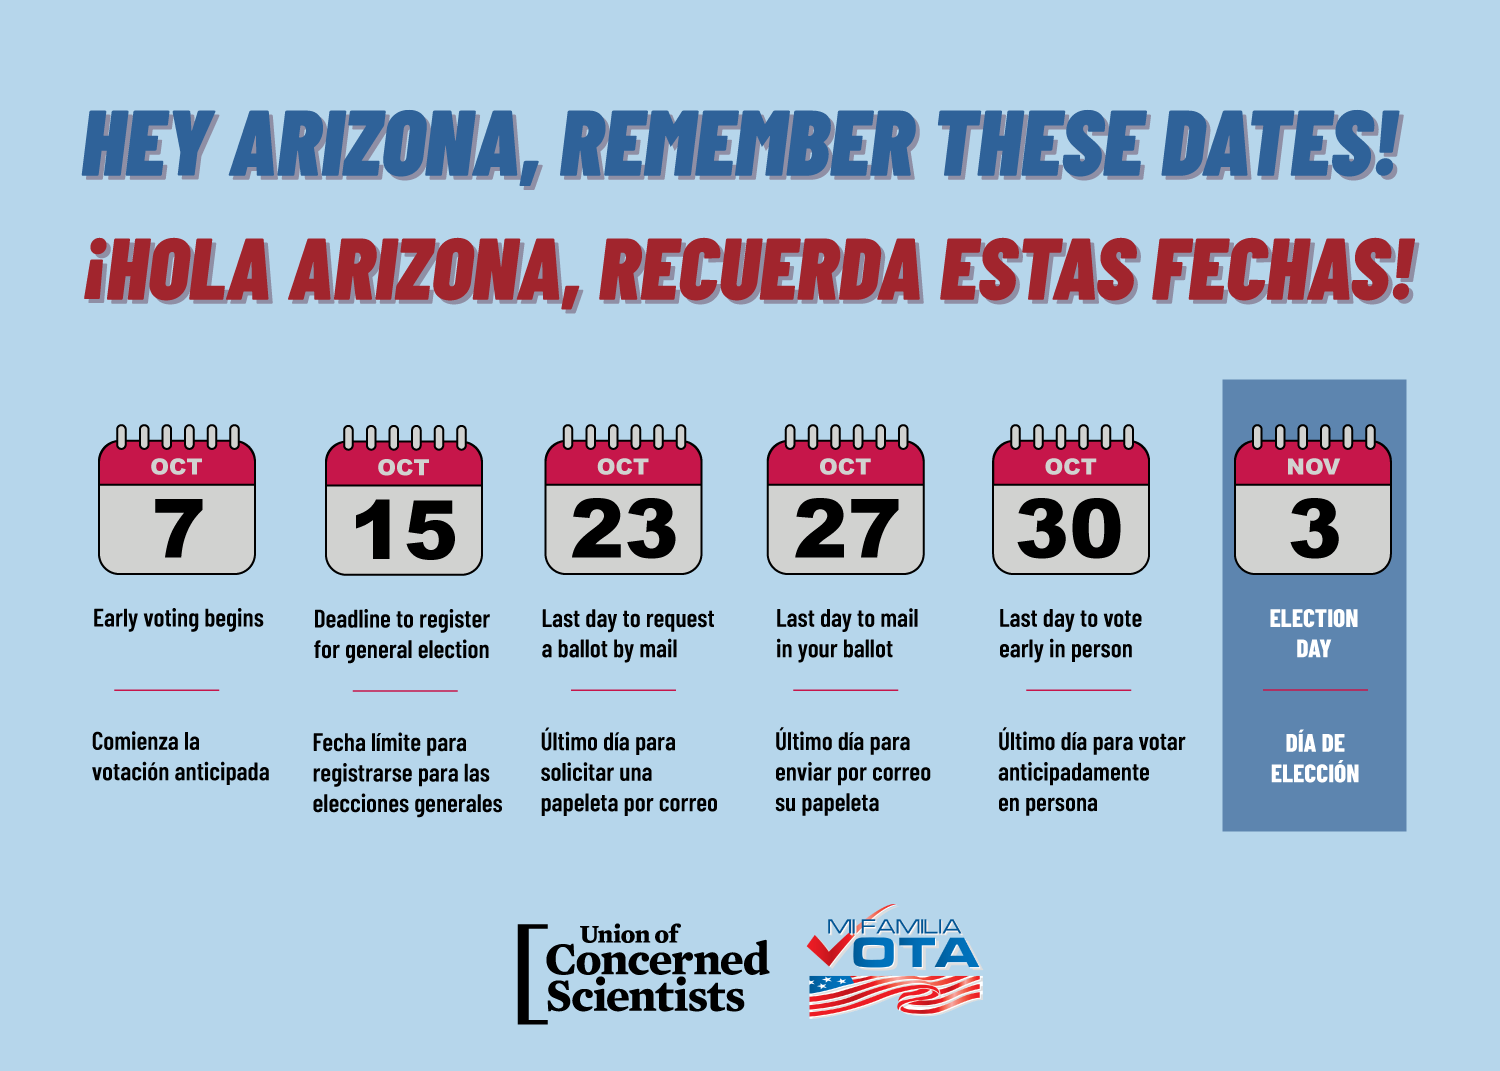 Postcard showing key dates for Arizona voters